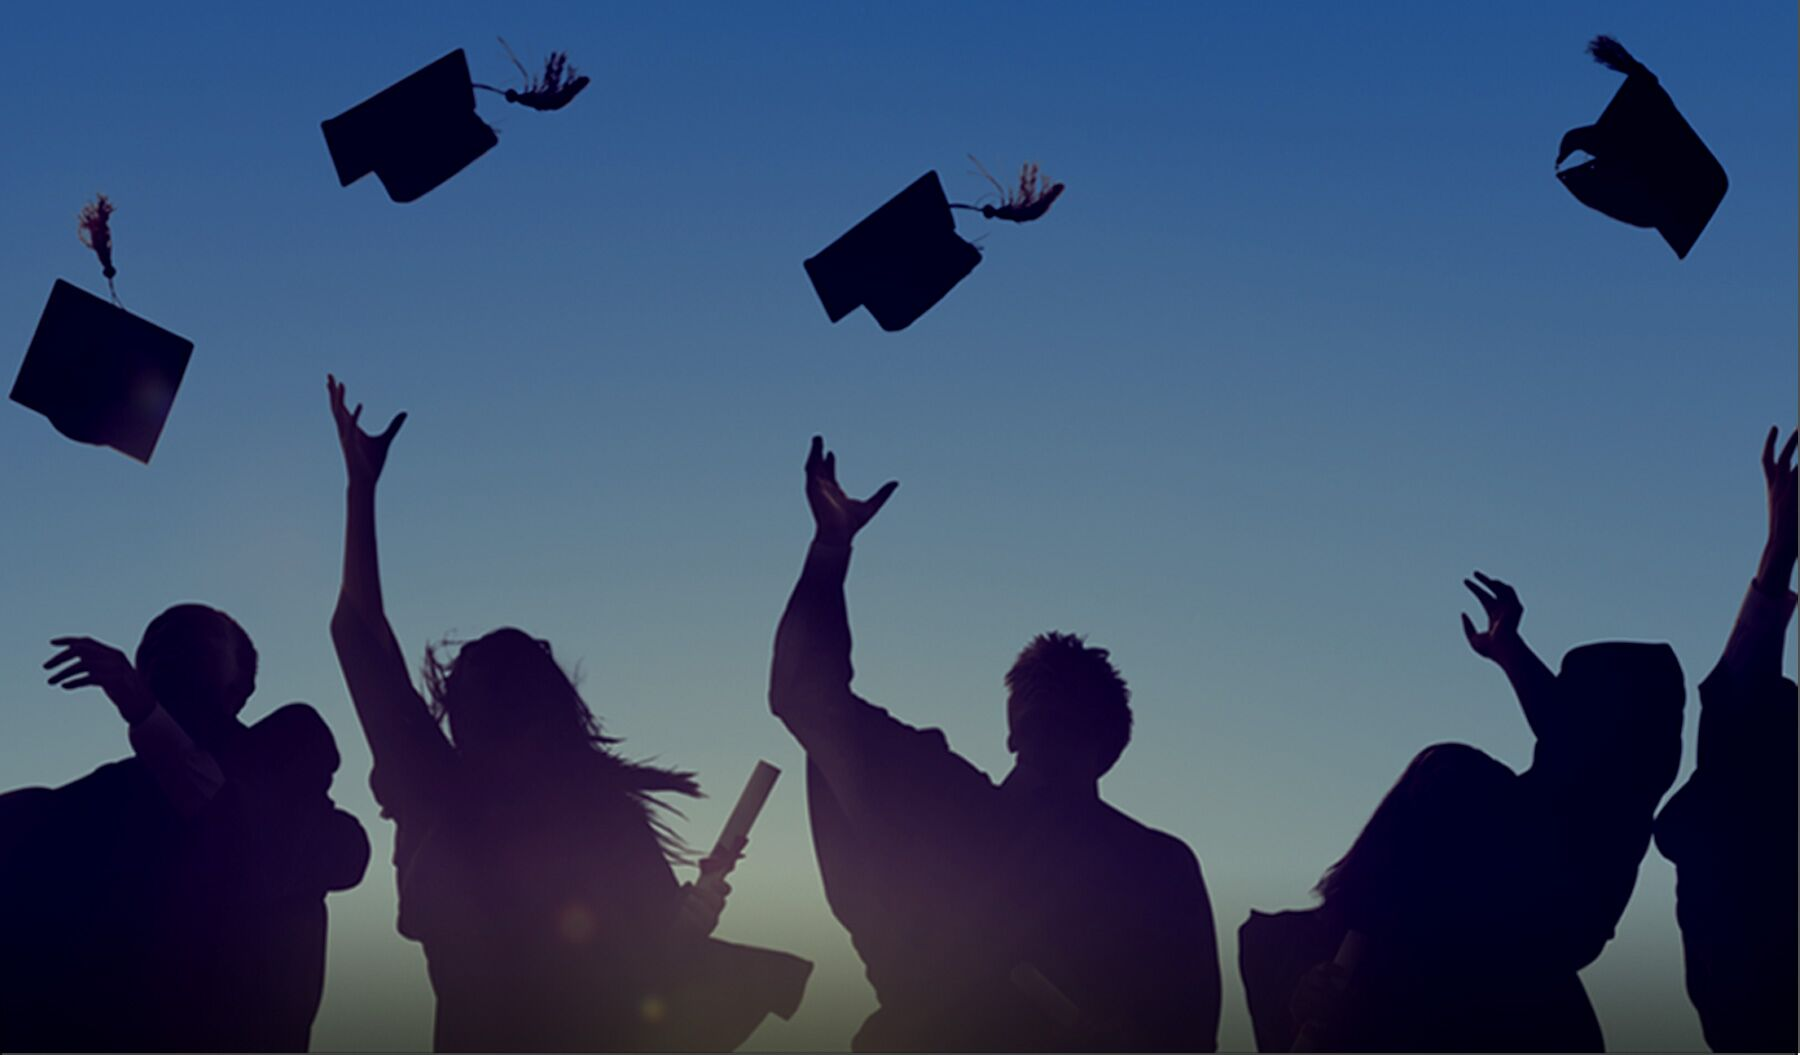 People throwing graduation caps into the air